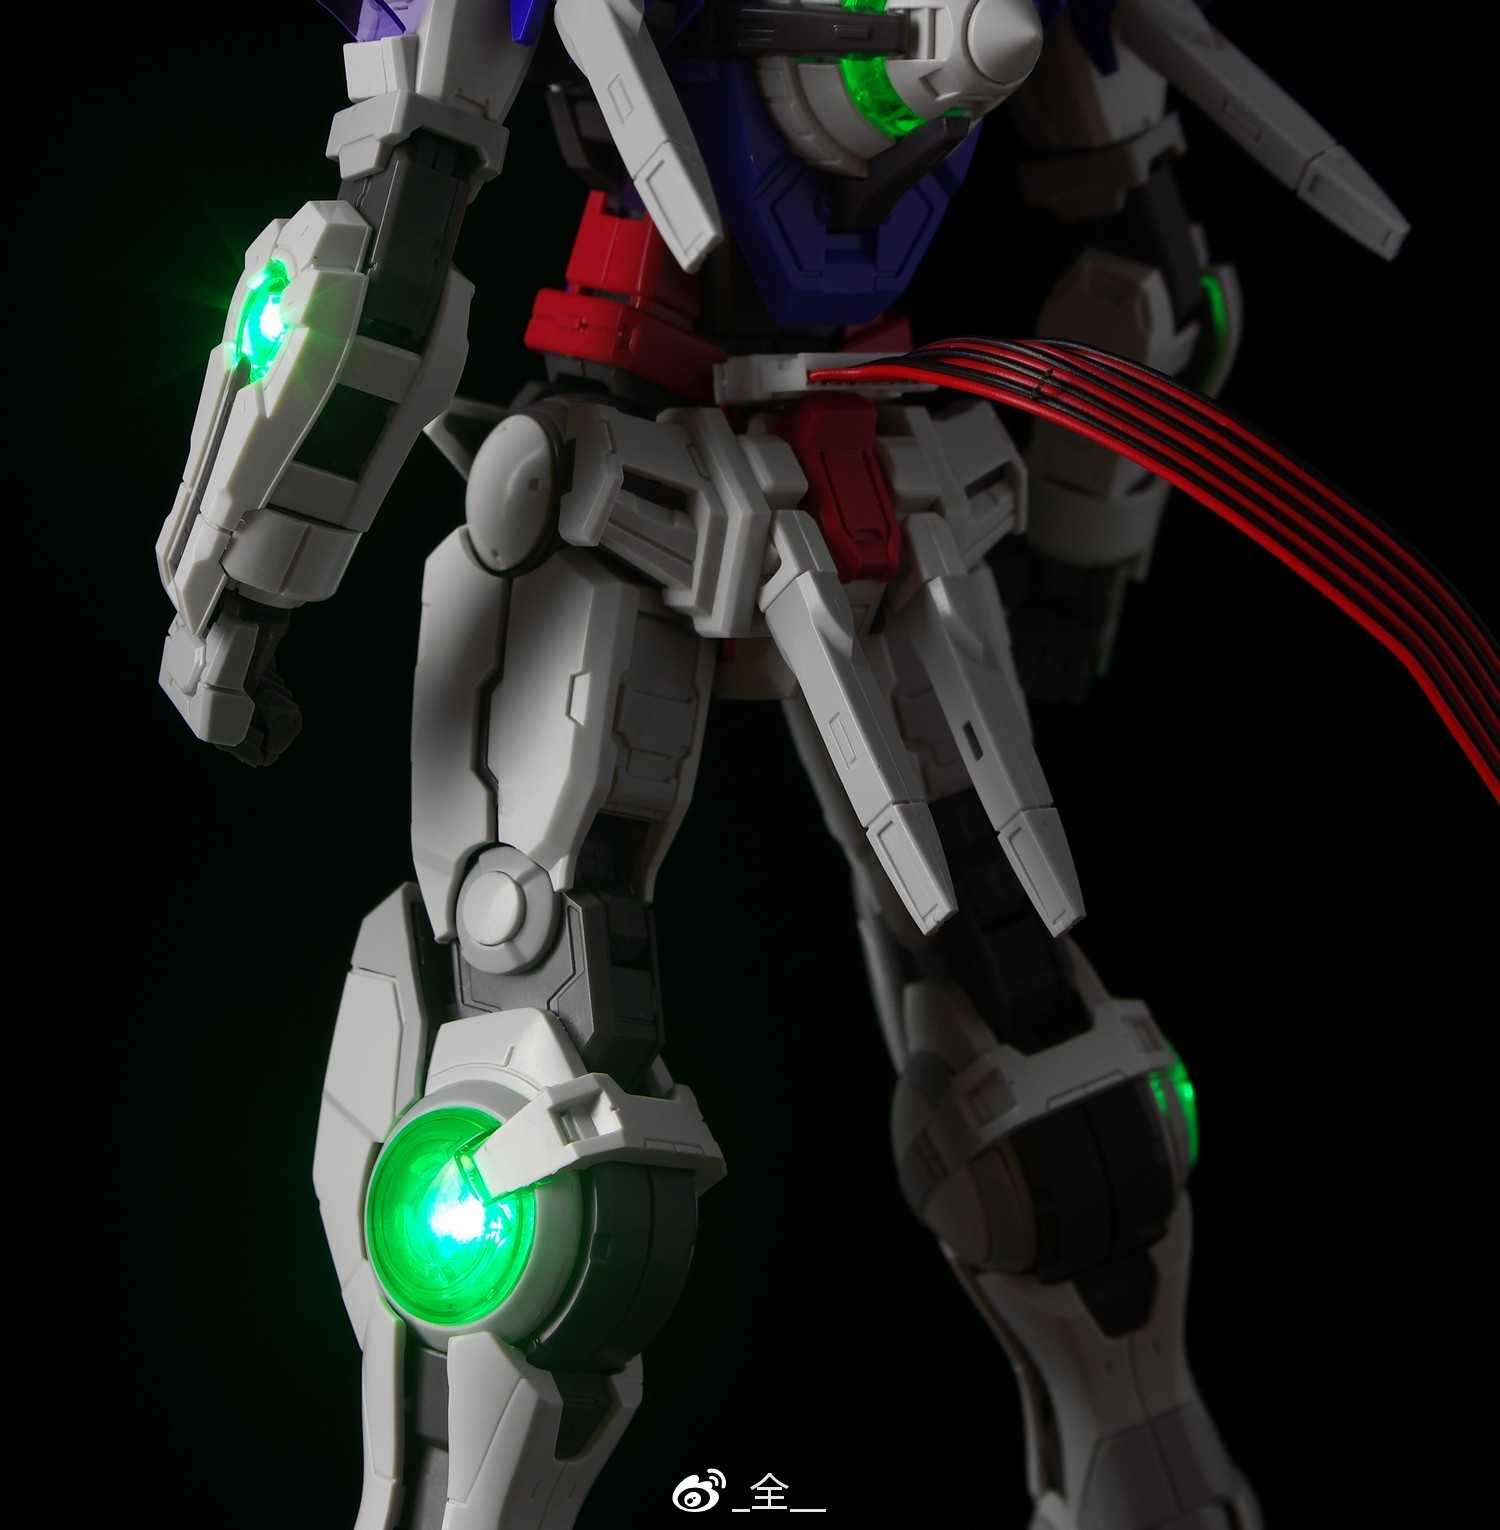 S269_mg_exia_led_hobby_star_inask_056.jpg